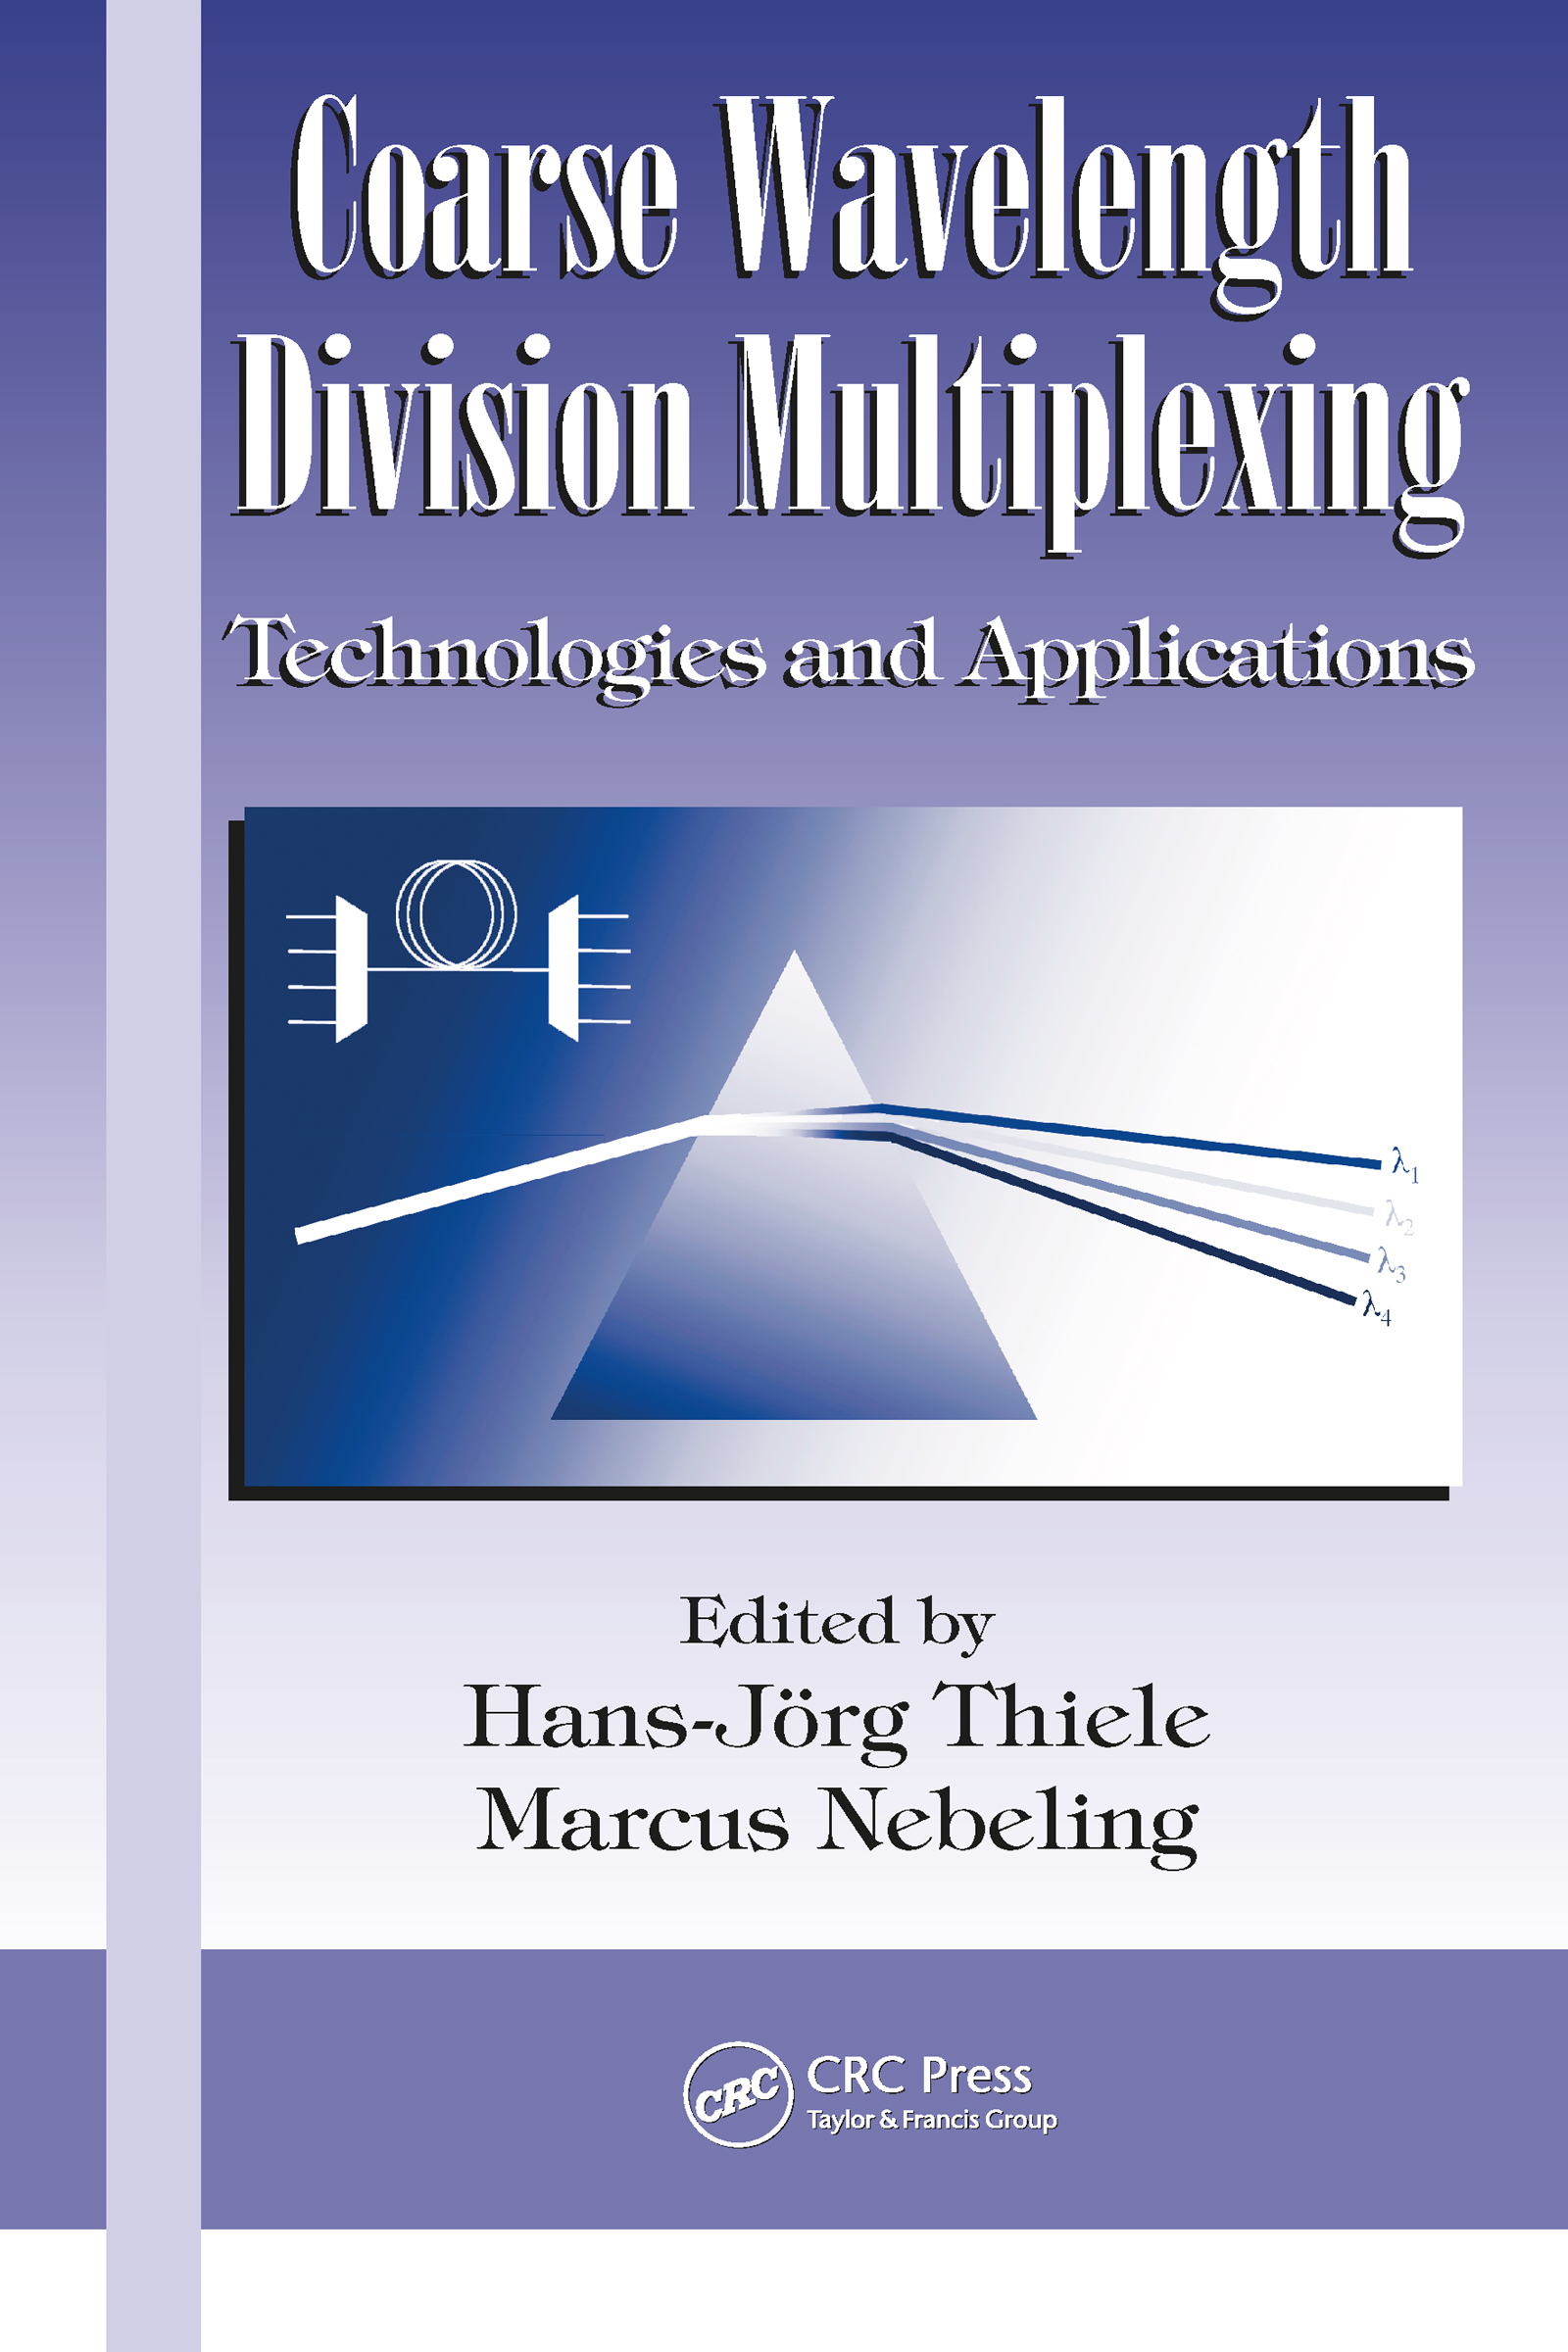 Coarse Wavelength Division Multiplexing: Technologies and Applications book cover